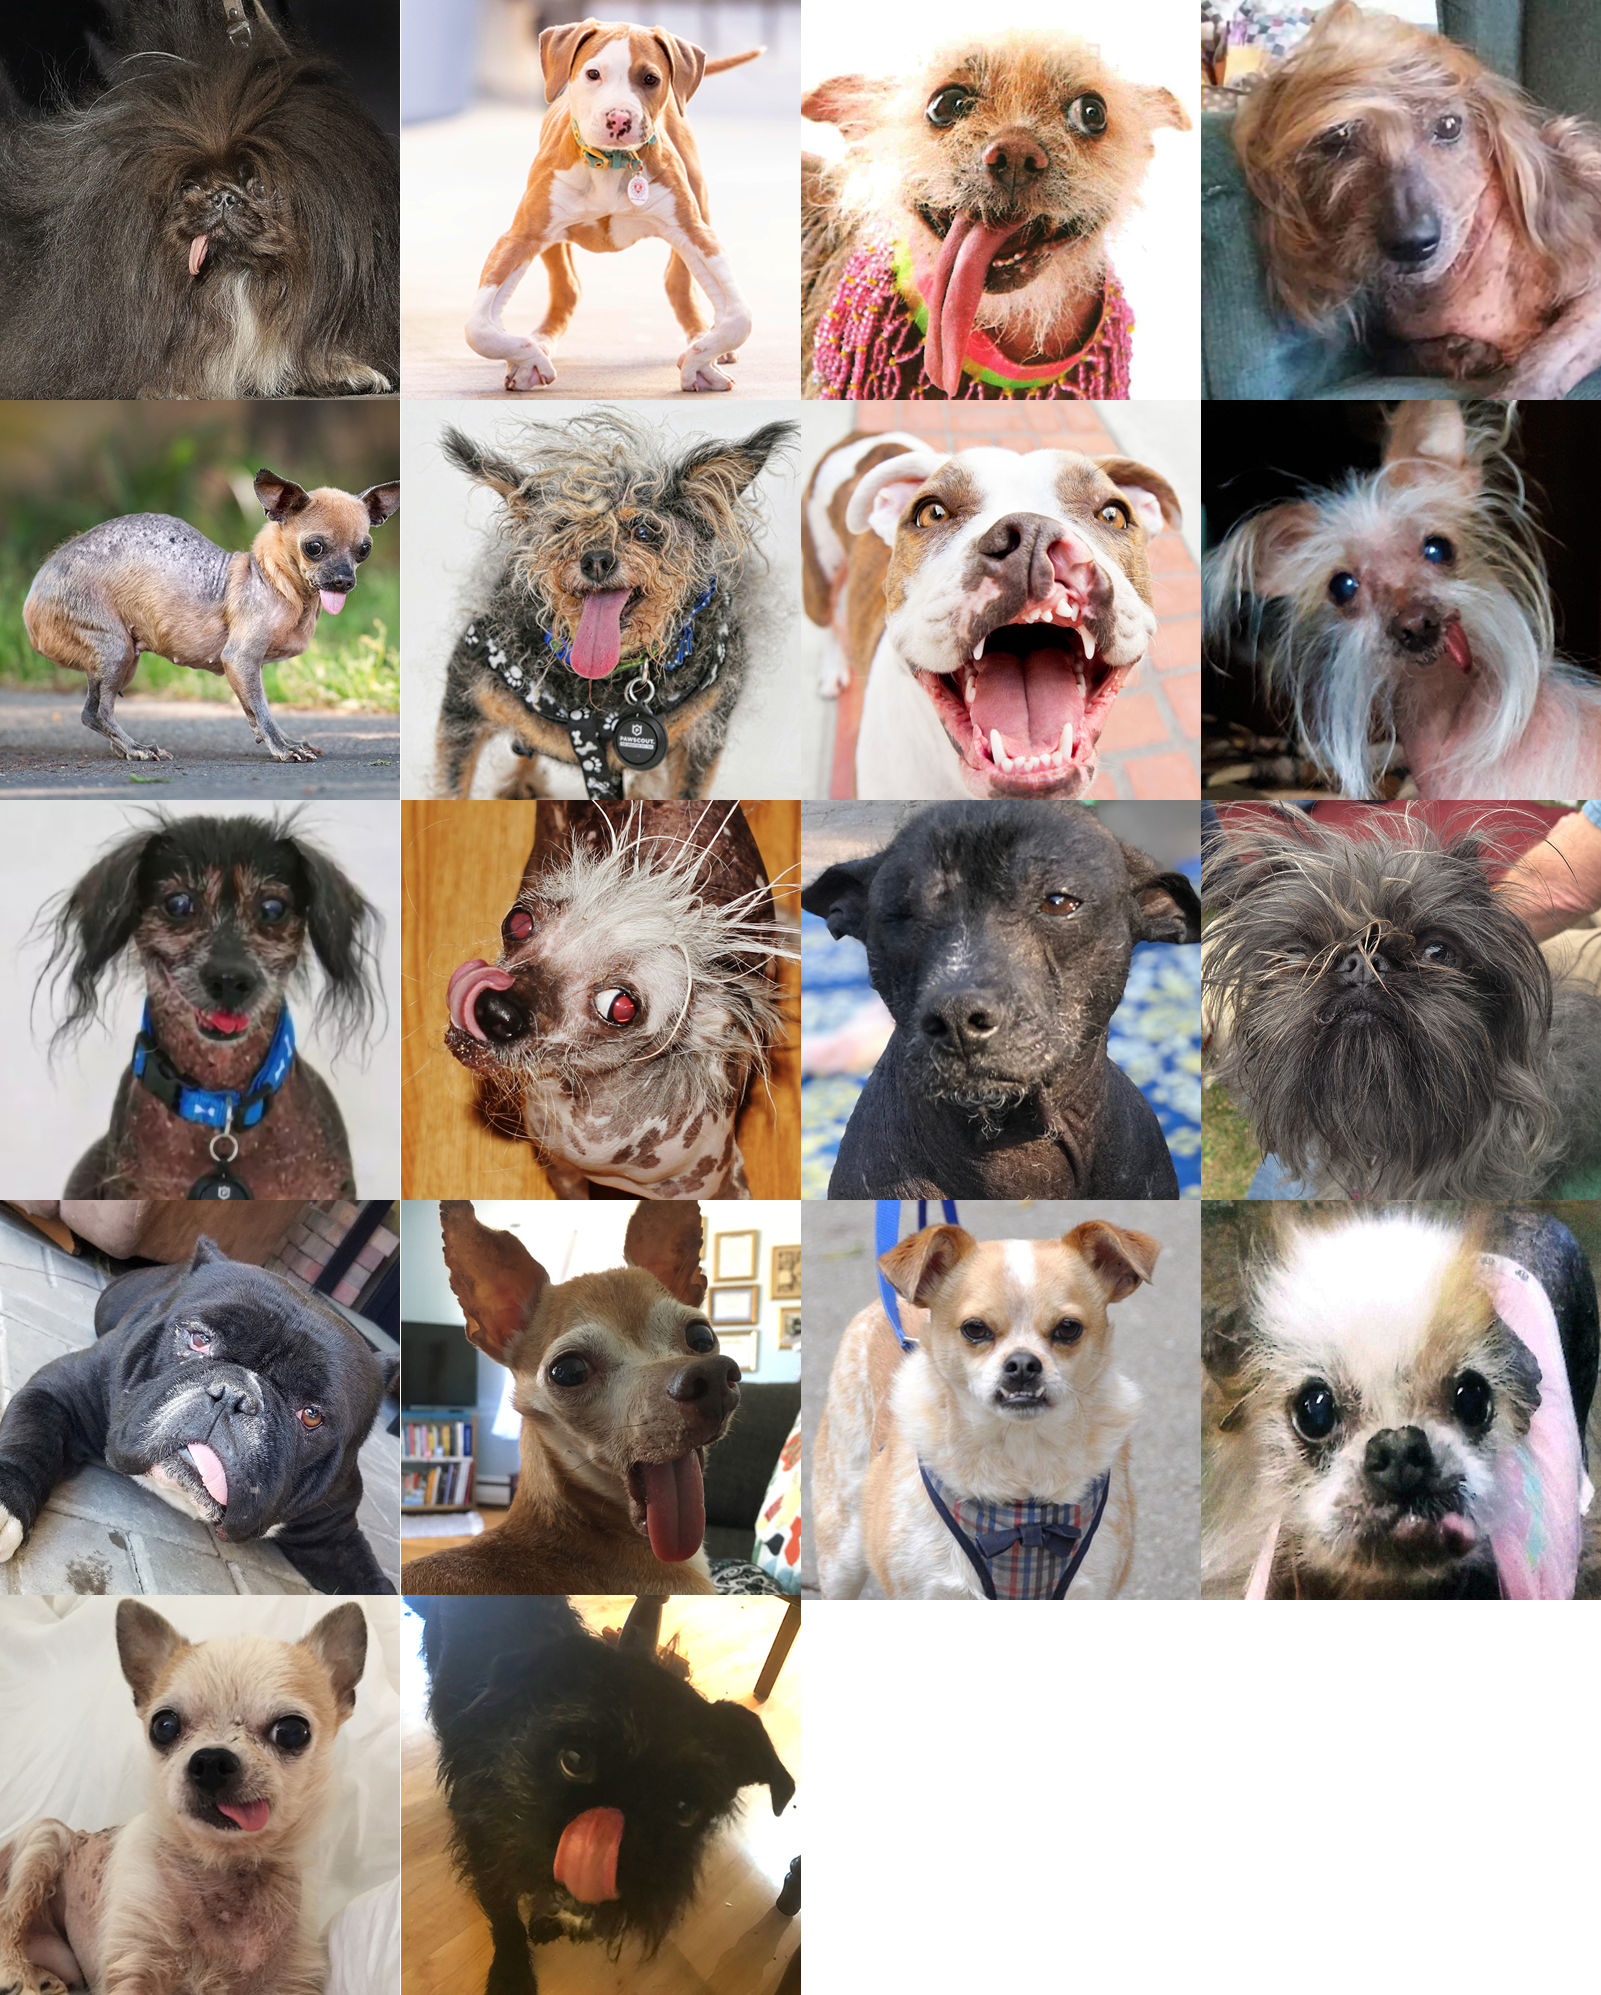 Les 18 participants du concours du chien le plus laid du monde 2019 Others contestants  World's Ugliest Dog 2019